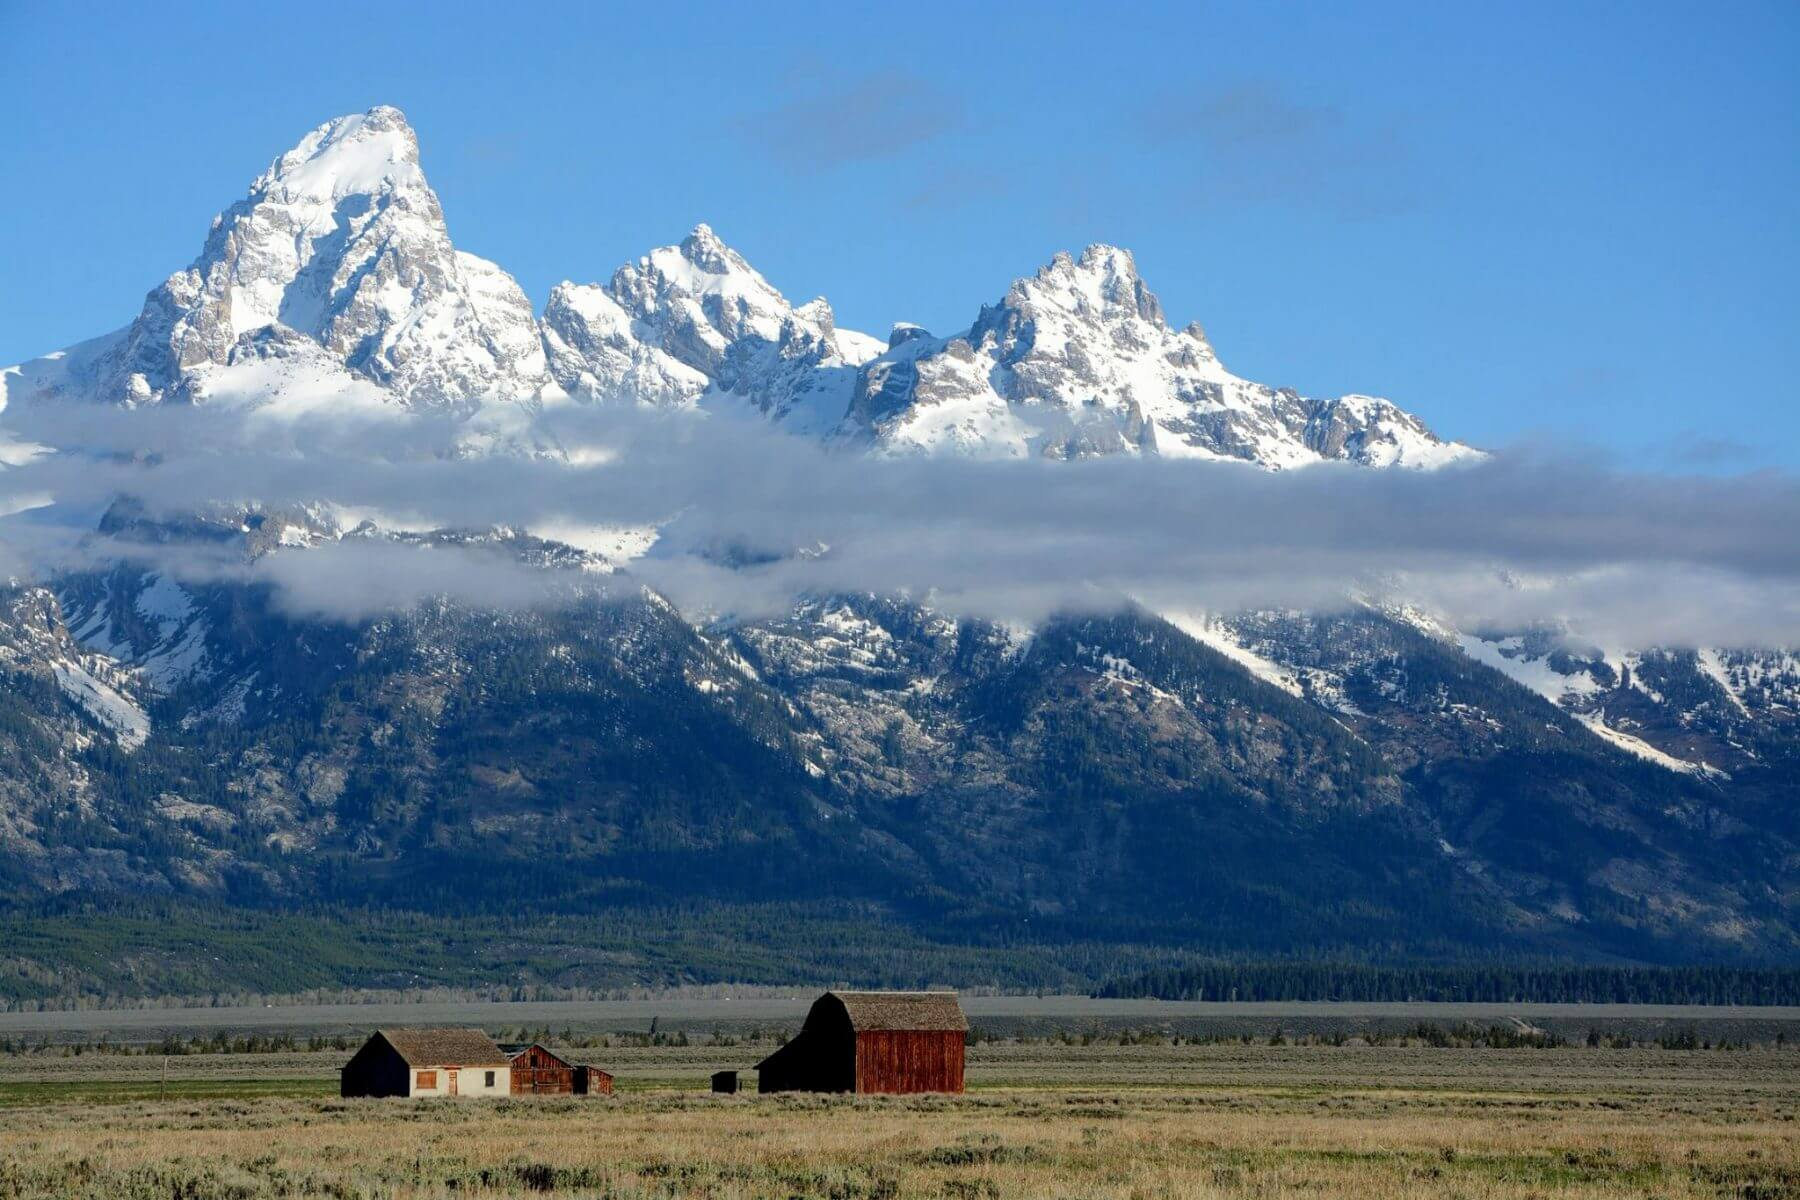 Travel without a plan and traveling slow through Jackson Hole & grand Teton National Park